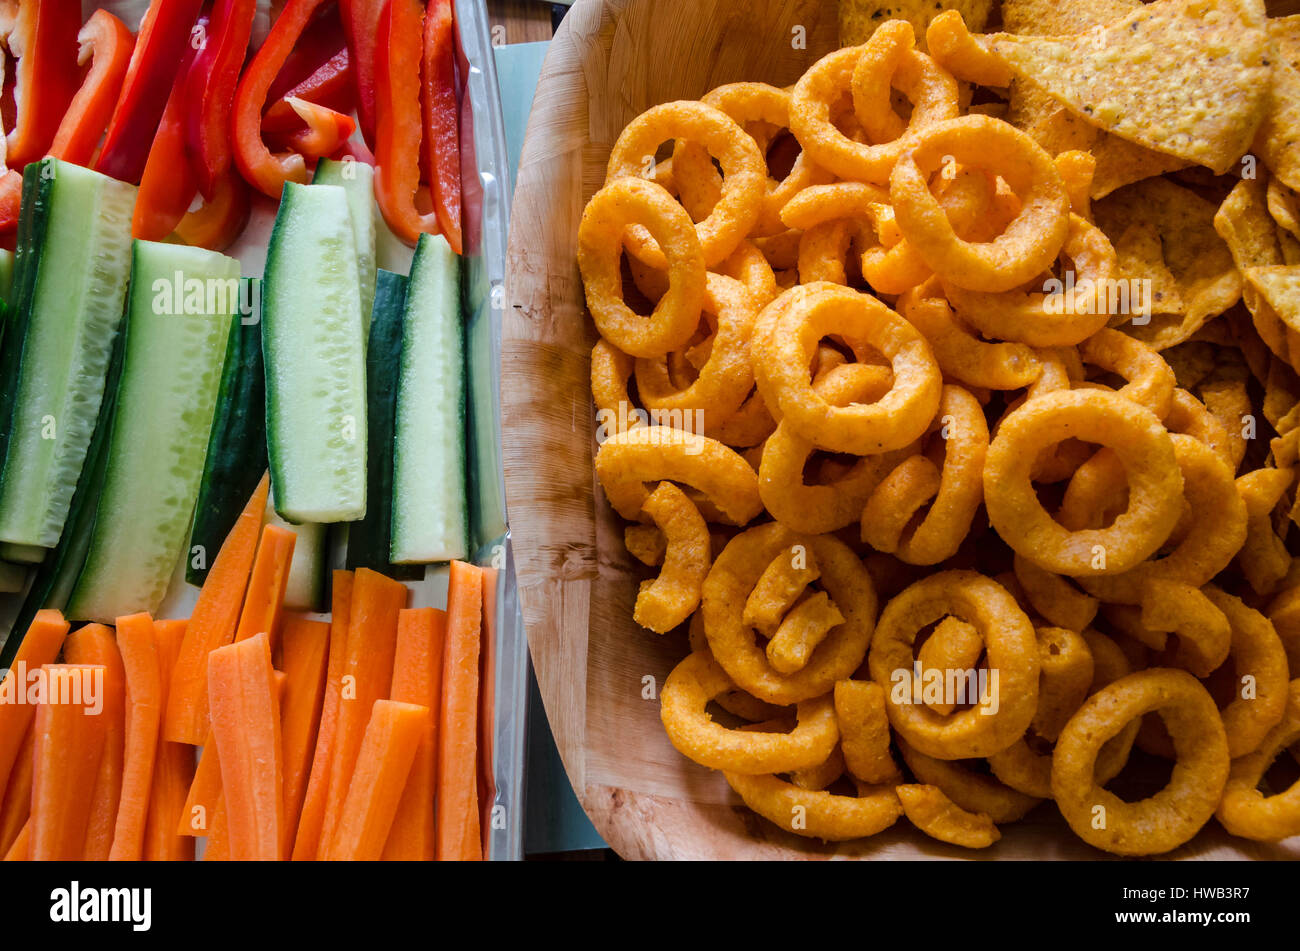 Healthy and unhealthy food snack choices with crisps and raw vegetable sticks seen side by side from above. - Stock Image